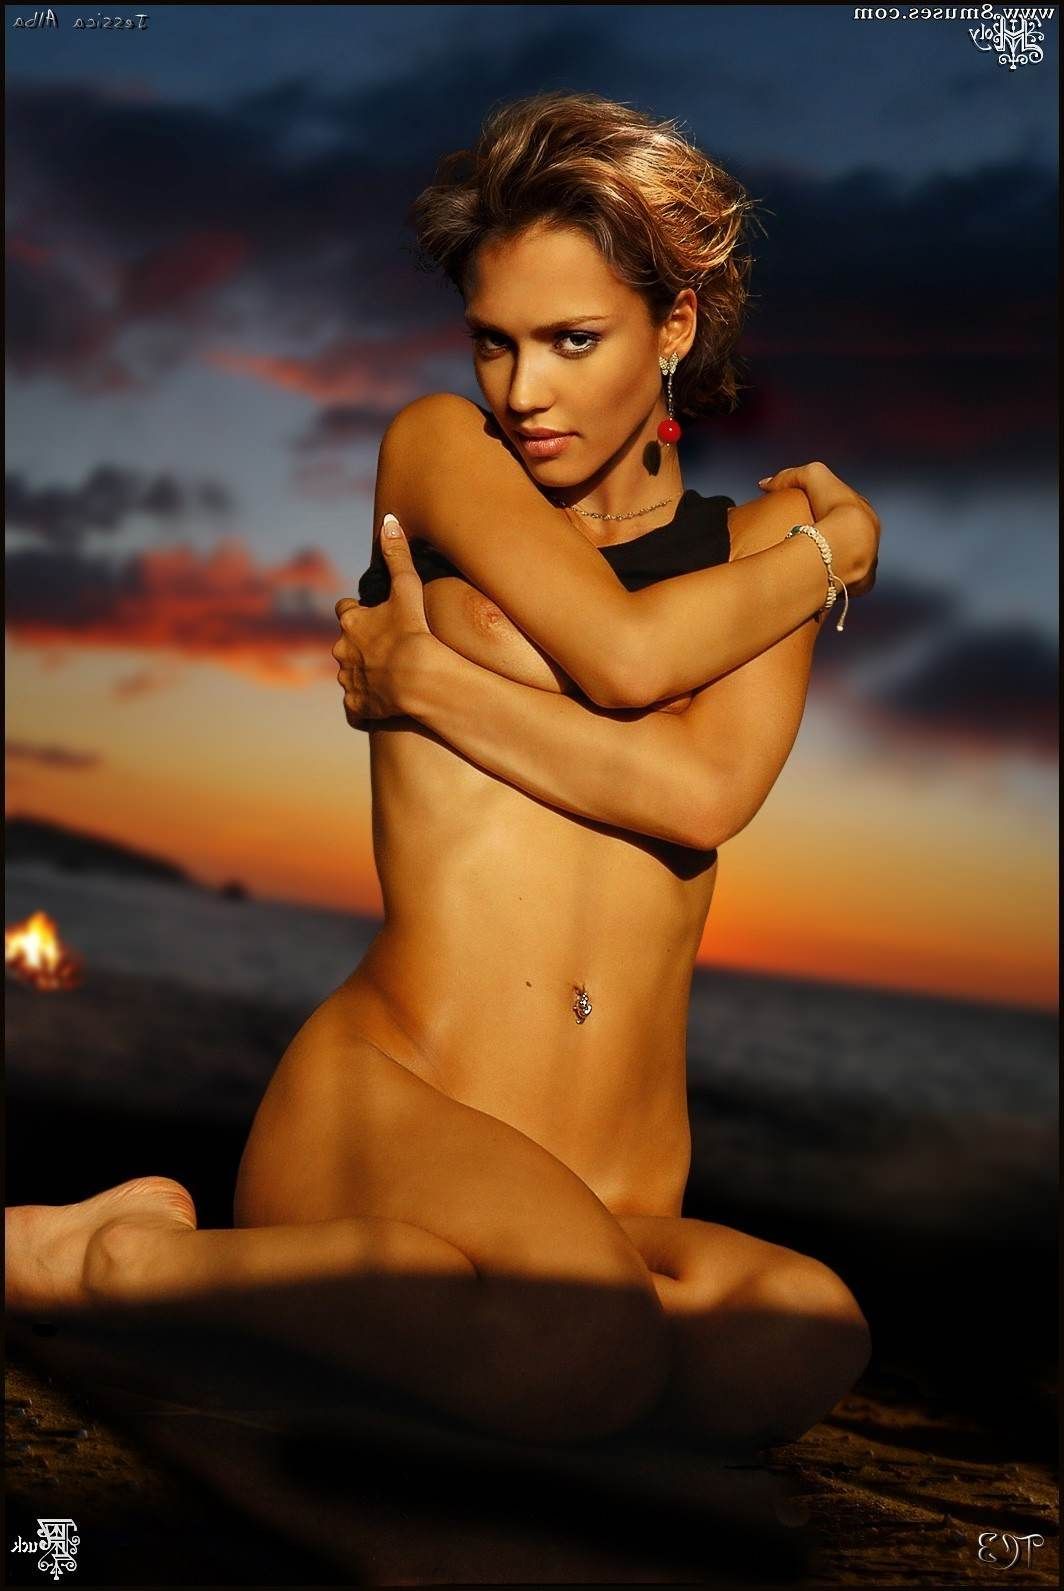 Fake-Celebrities-Sex-Pictures/Jessica-Alba Jessica_Alba__8muses_-_Sex_and_Porn_Comics_295.jpg